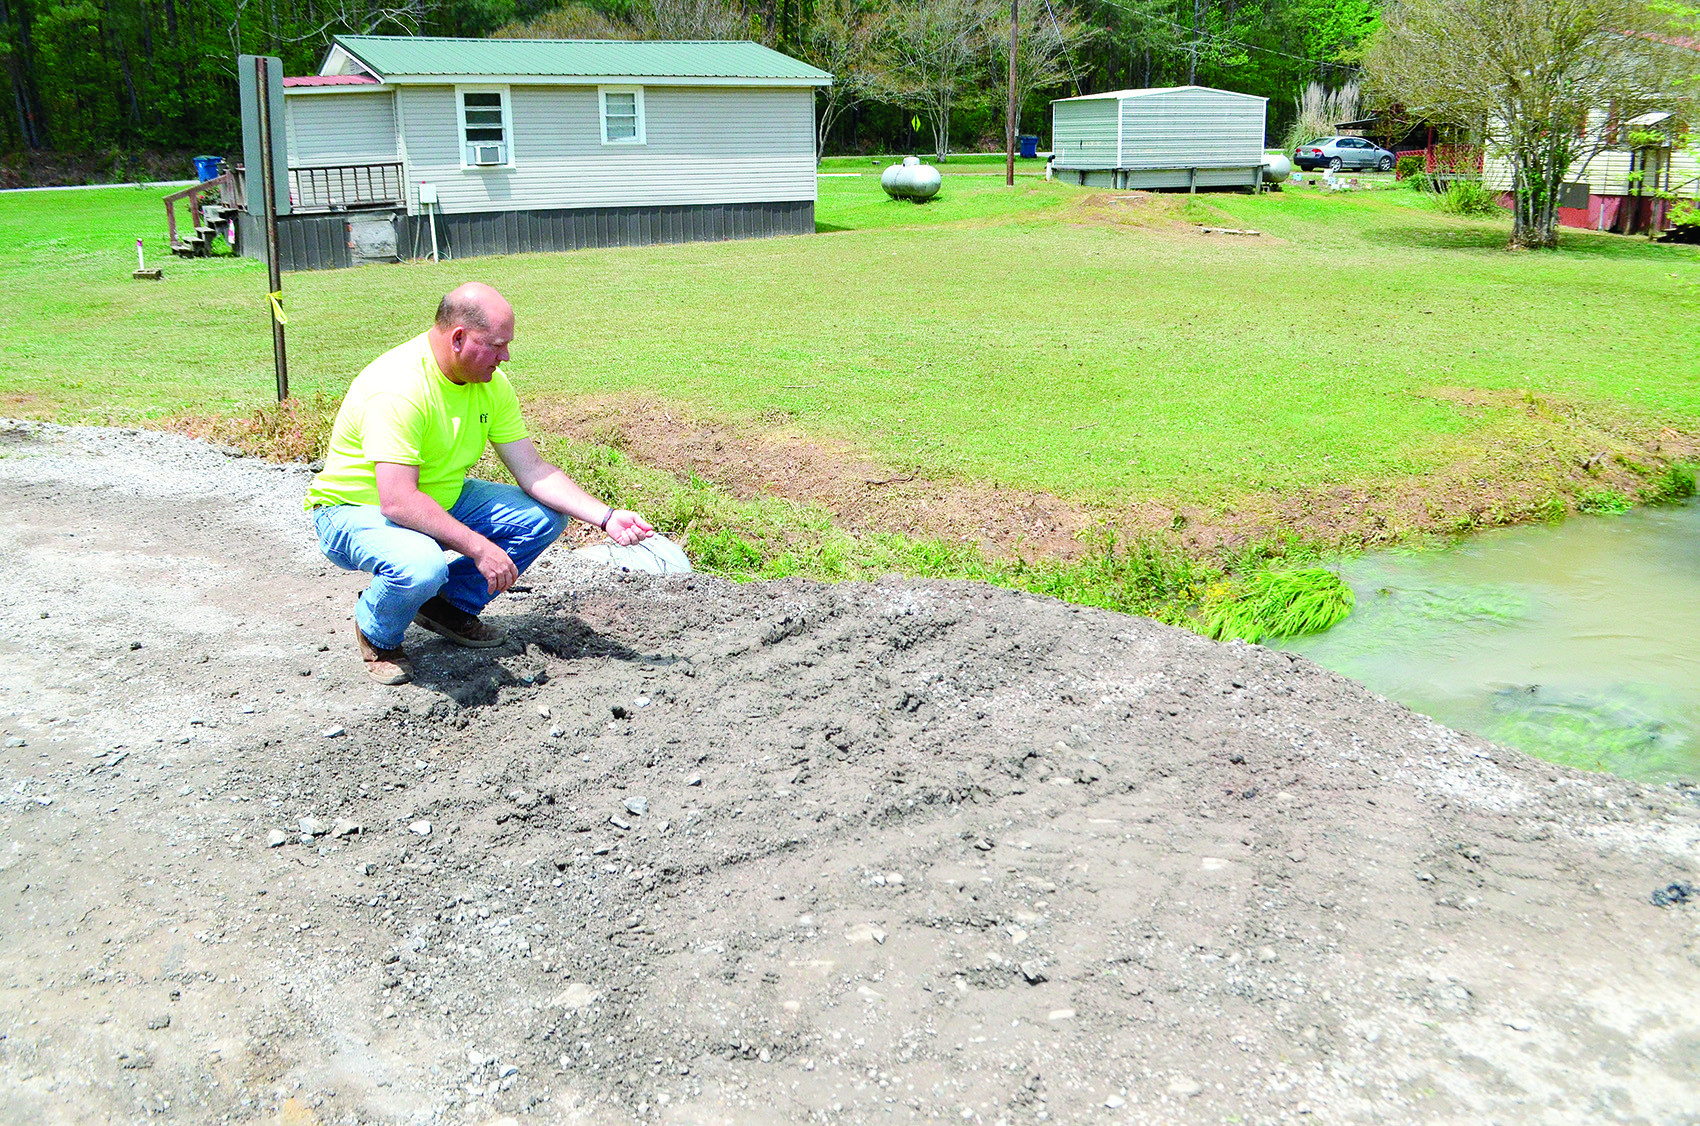 Walker County District 2 Commissioner Jeff Burrough, pictured, explains that torrential rains caused a creek to overflow Sunday. The culvert, below School Street, couldn't accommodate the water's rise and washed out the street.